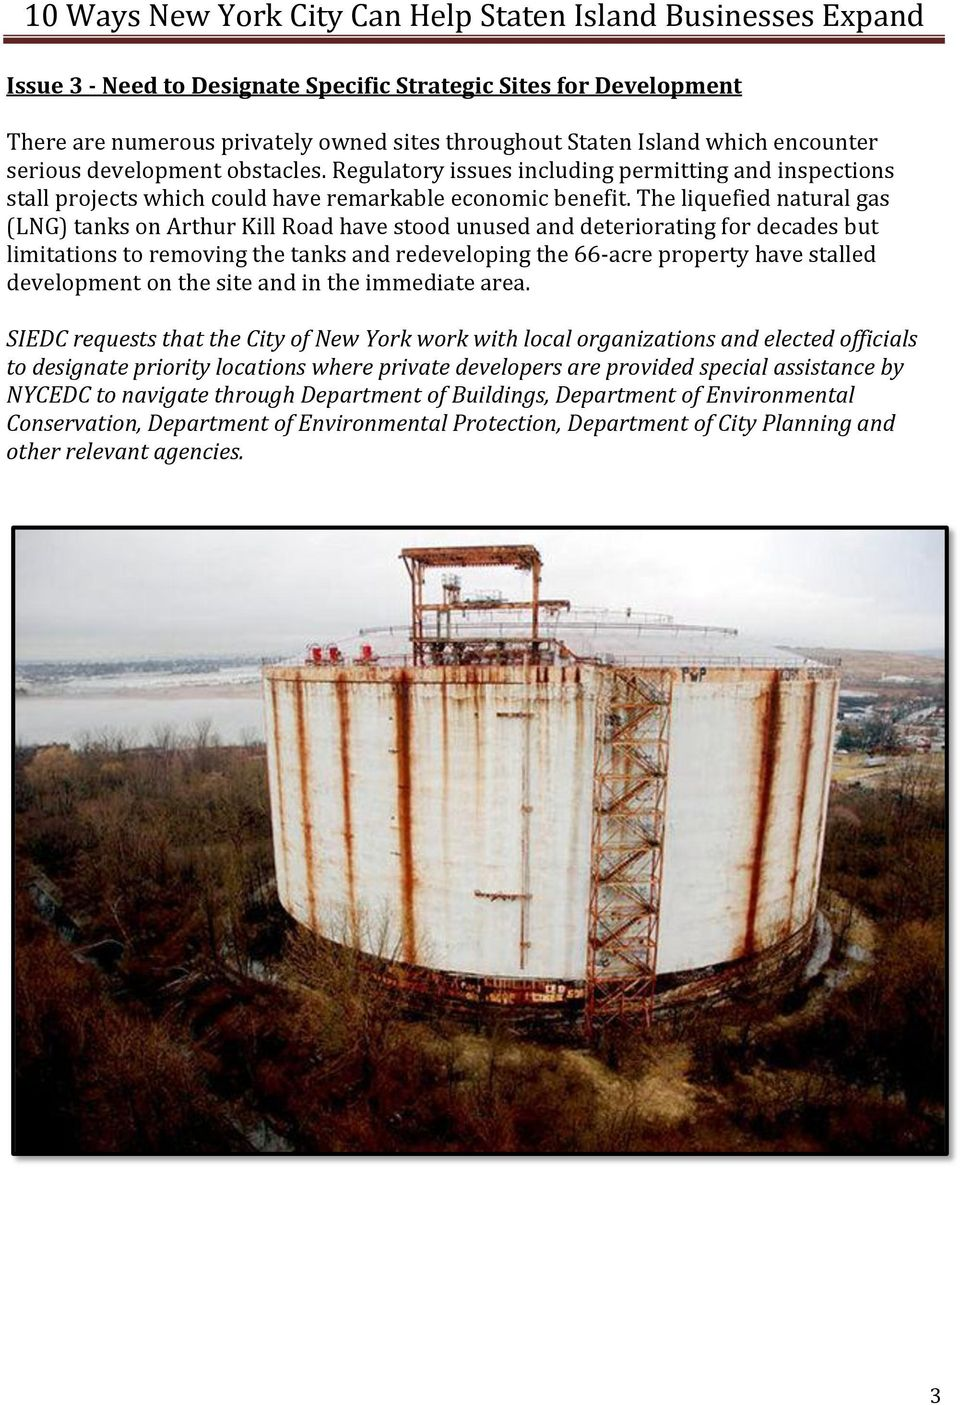 The liquefied natural gas (LNG) tanks on Arthur Kill Road have stood unused and deteriorating for decades but limitations to removing the tanks and redeveloping the 66-acre property have stalled